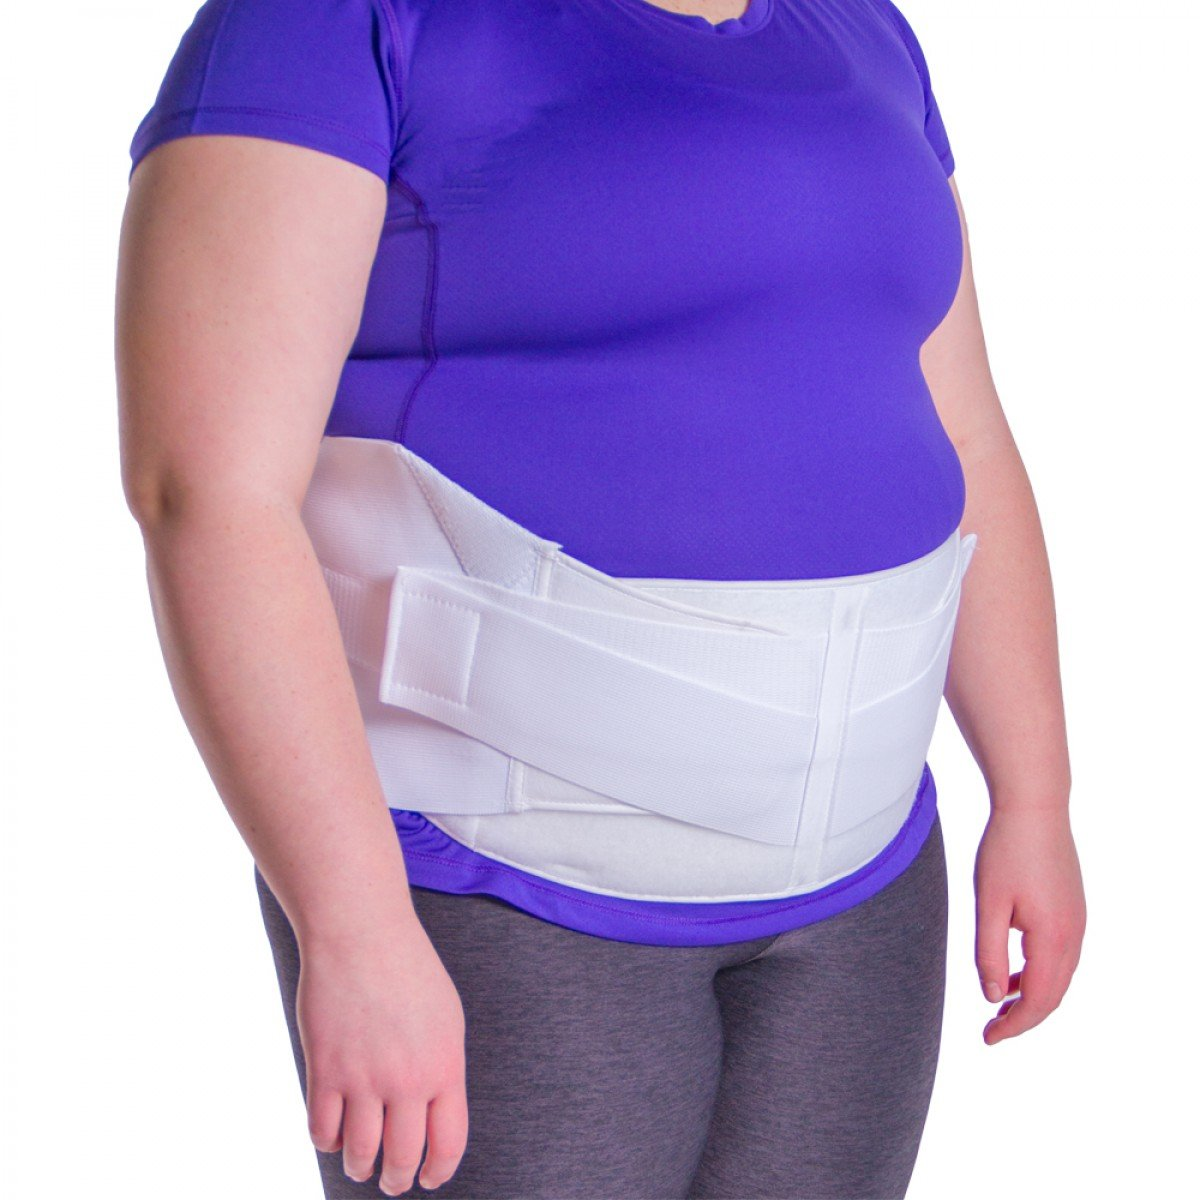 BraceAbility Obesity Belt | Stomach Holder Brace to Lift your Hanging Belly, Abdominal Pannus Sling Tummy Girdle & Back Support for Plus Size Men and Women